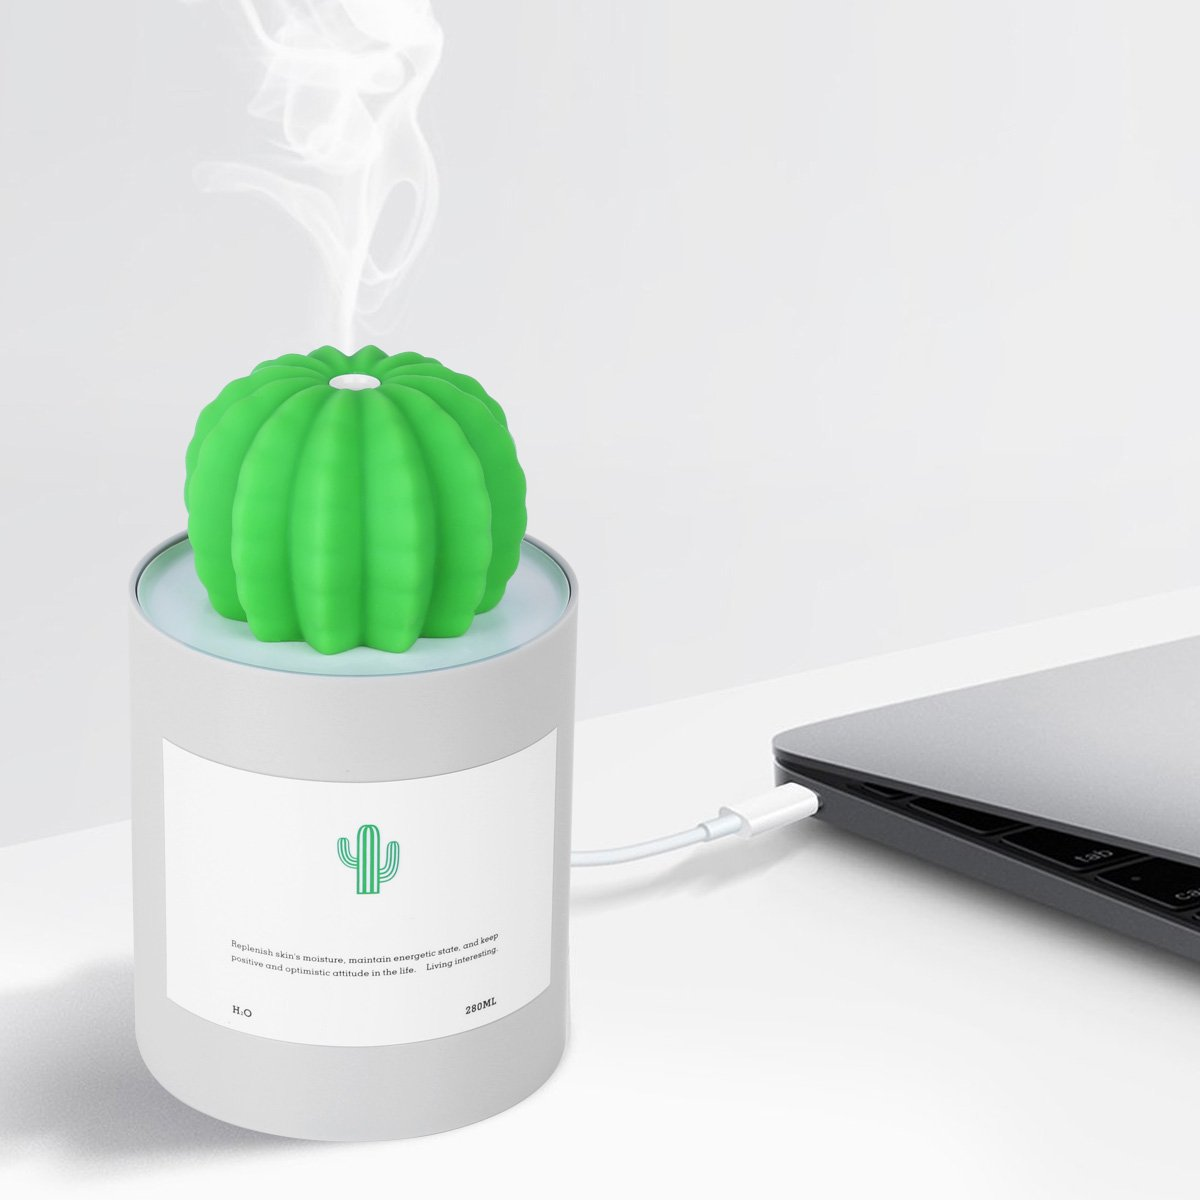 Mini Cactus Mist Humidifier Air Diffuser with Timed Auto Shutdown Low Noise for Car Office Desk Home Baby Bedroom Gray One Size